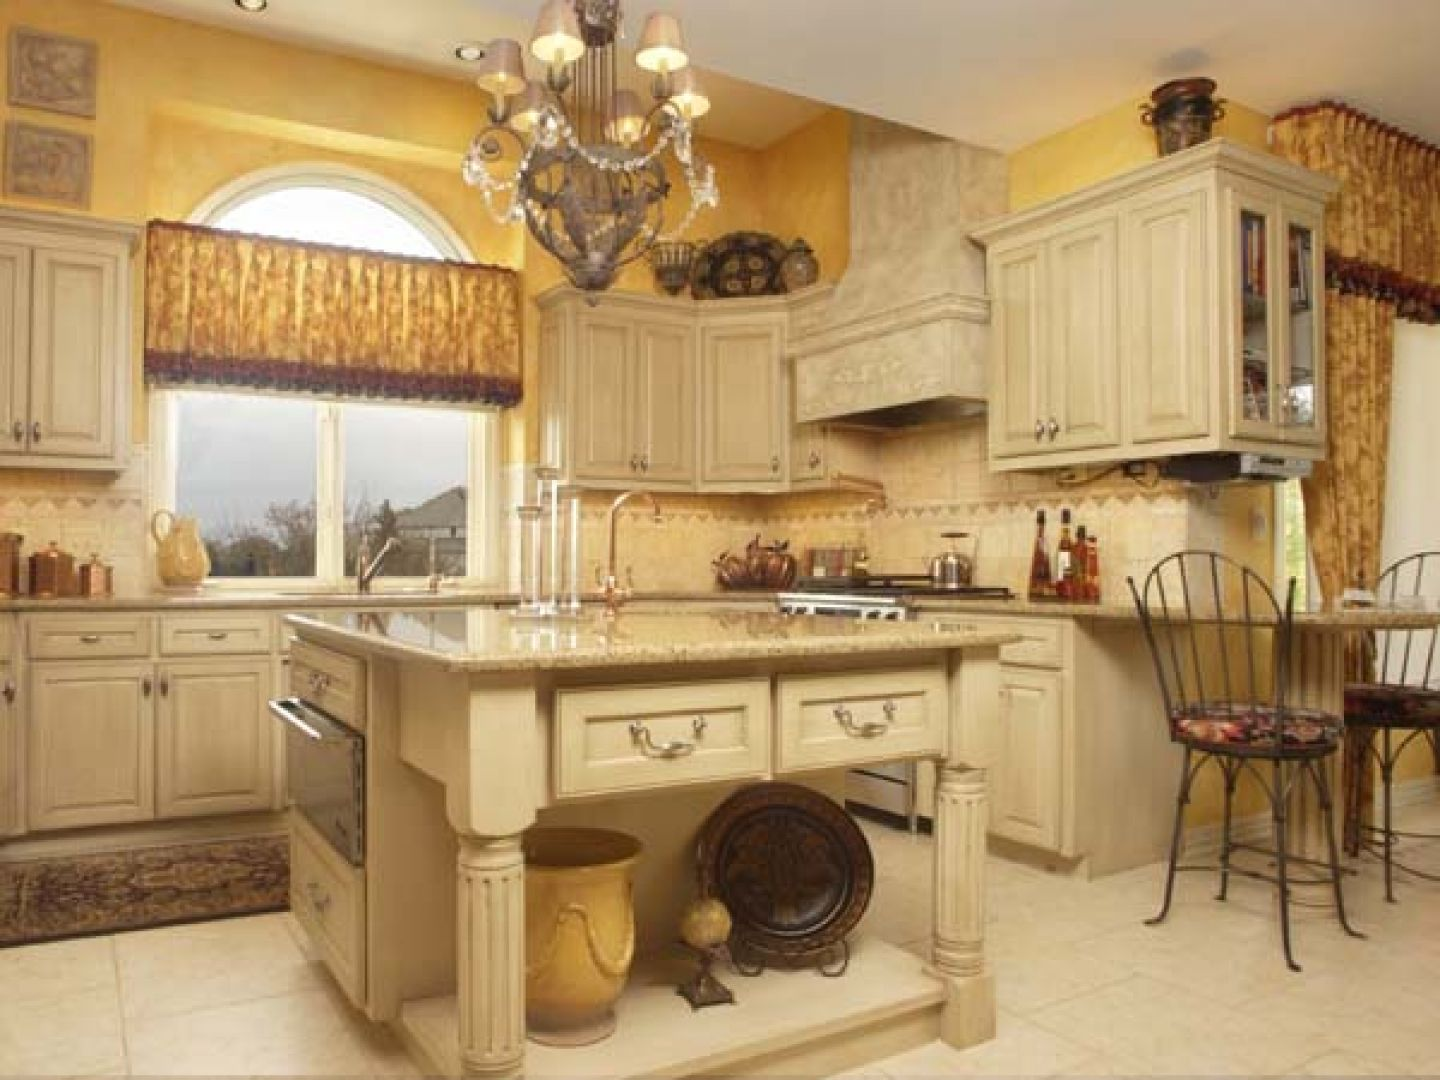 Tuscany kitchen would change wall color with for Kitchen colors with white cabinets with mermaid outdoor wall art